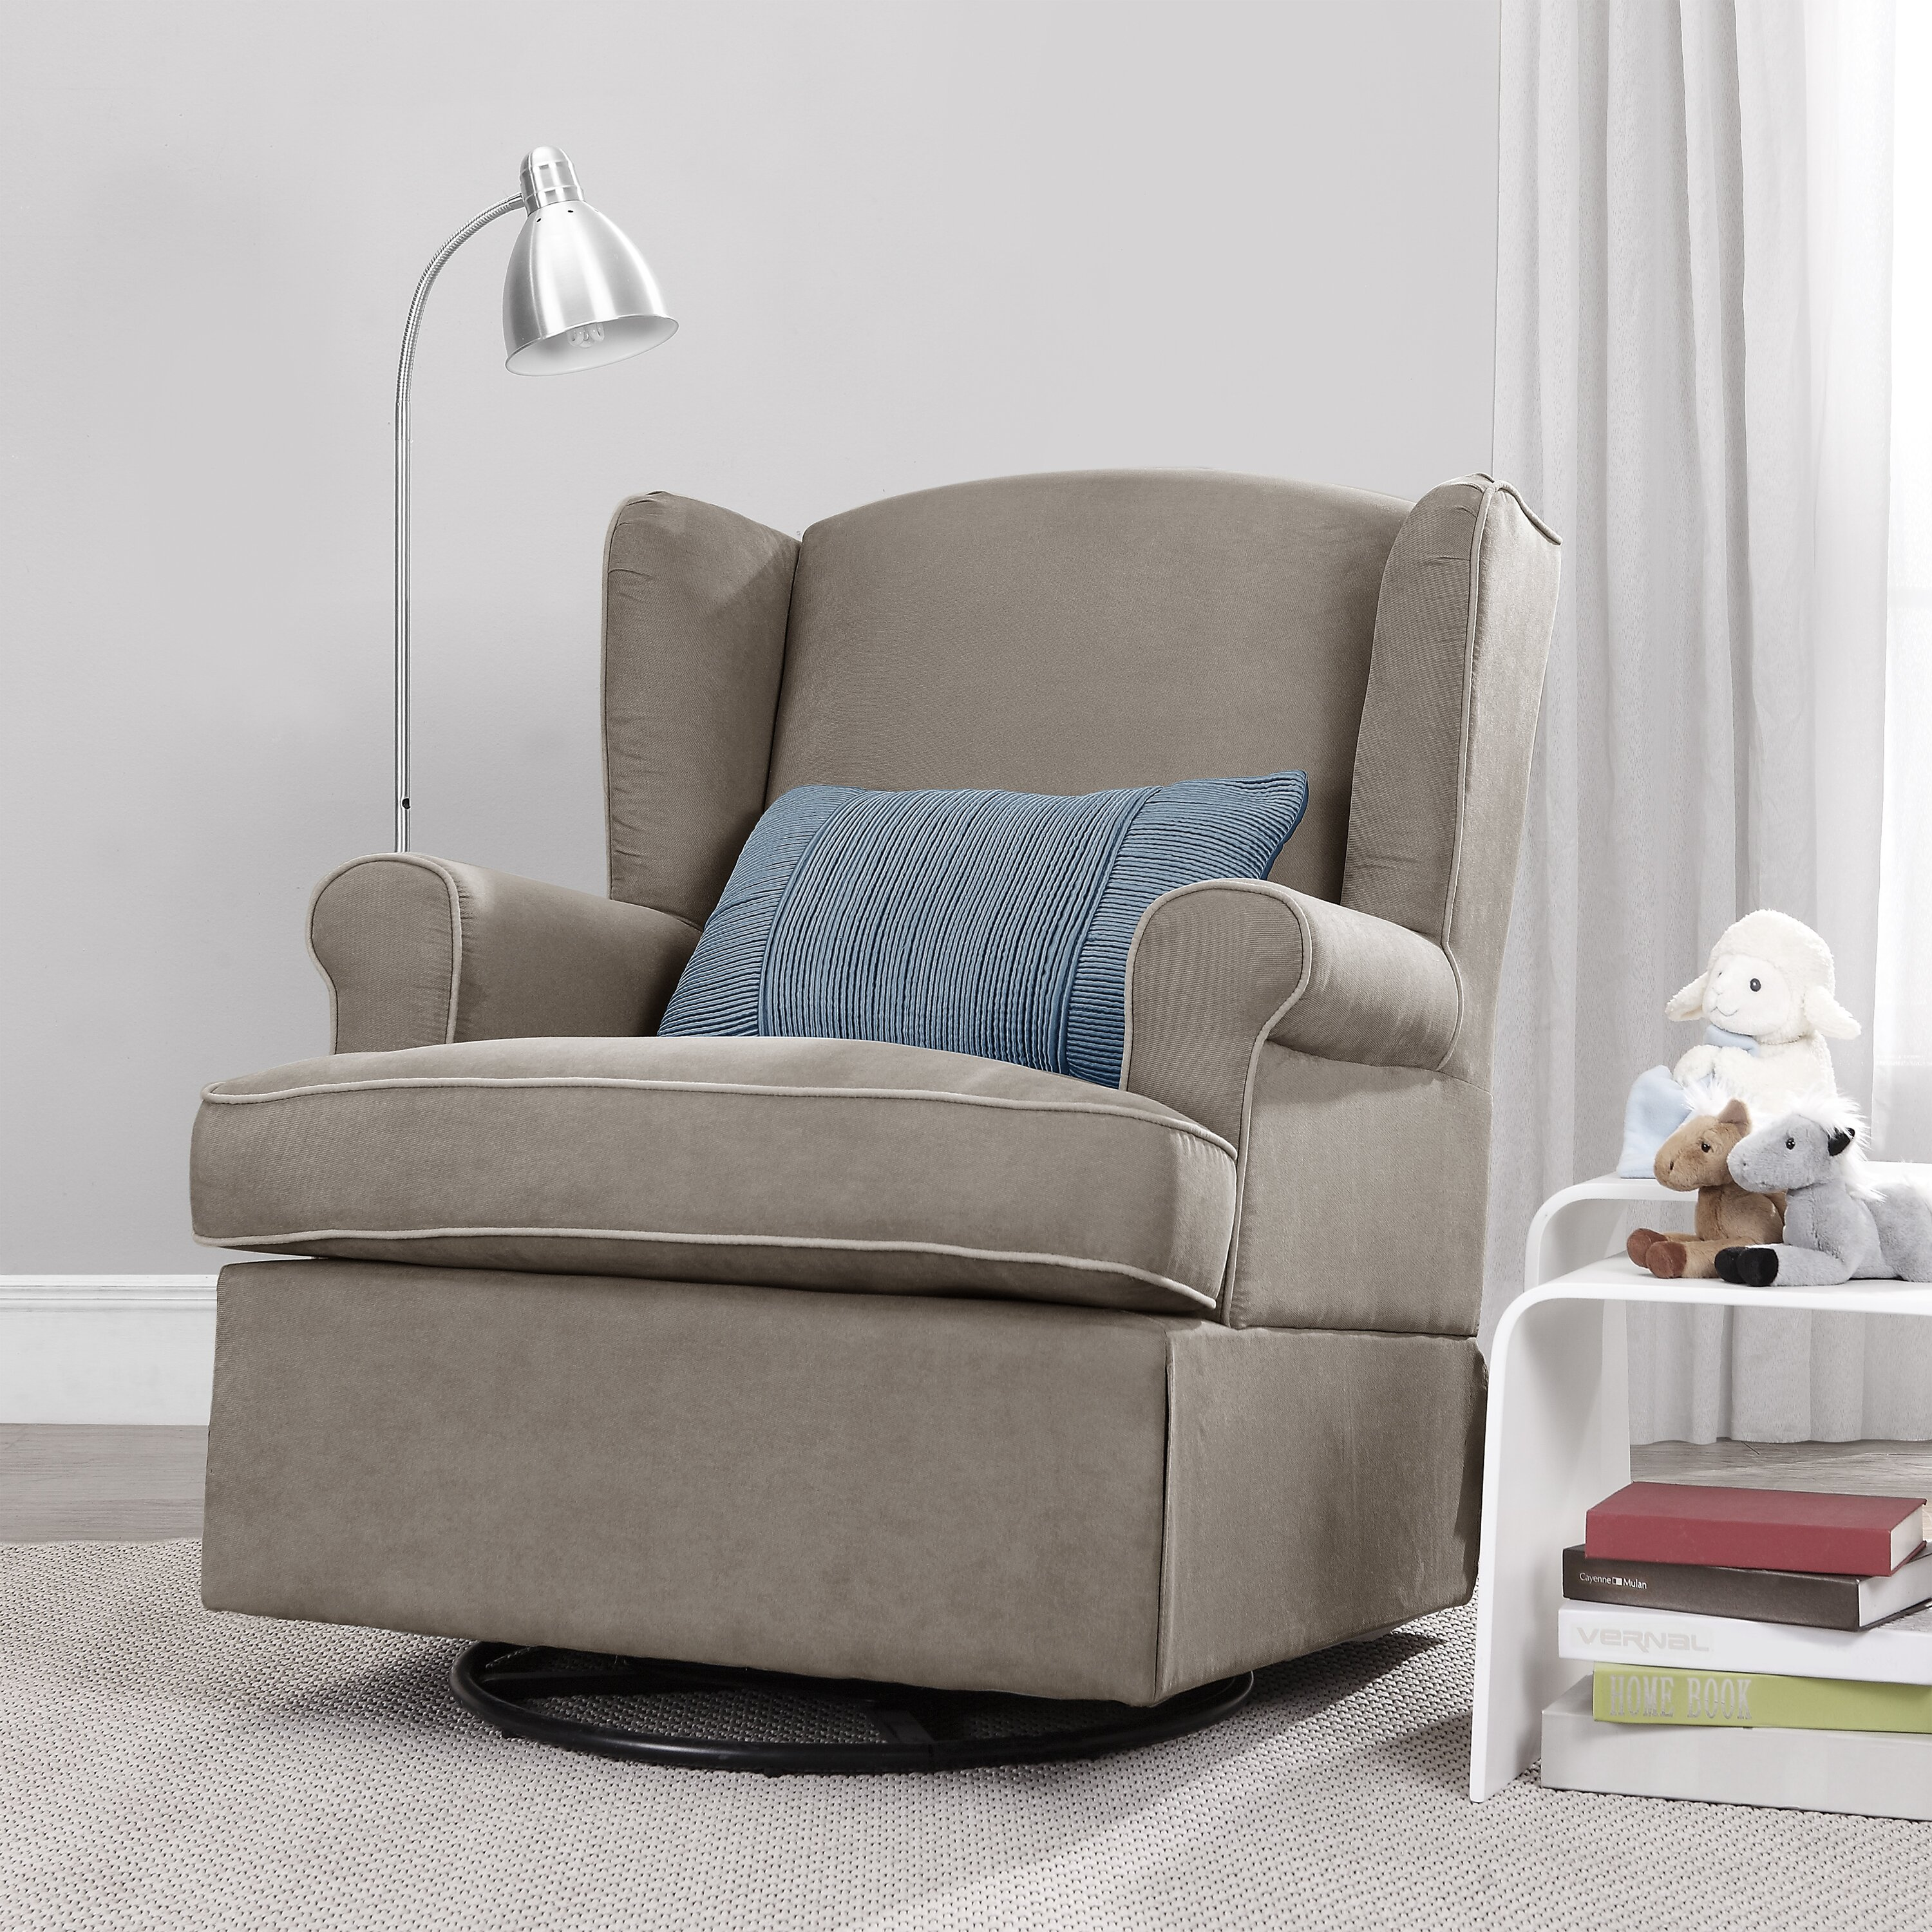 Baby Relax Baby Relax Swivel Glider In Dark Taupe